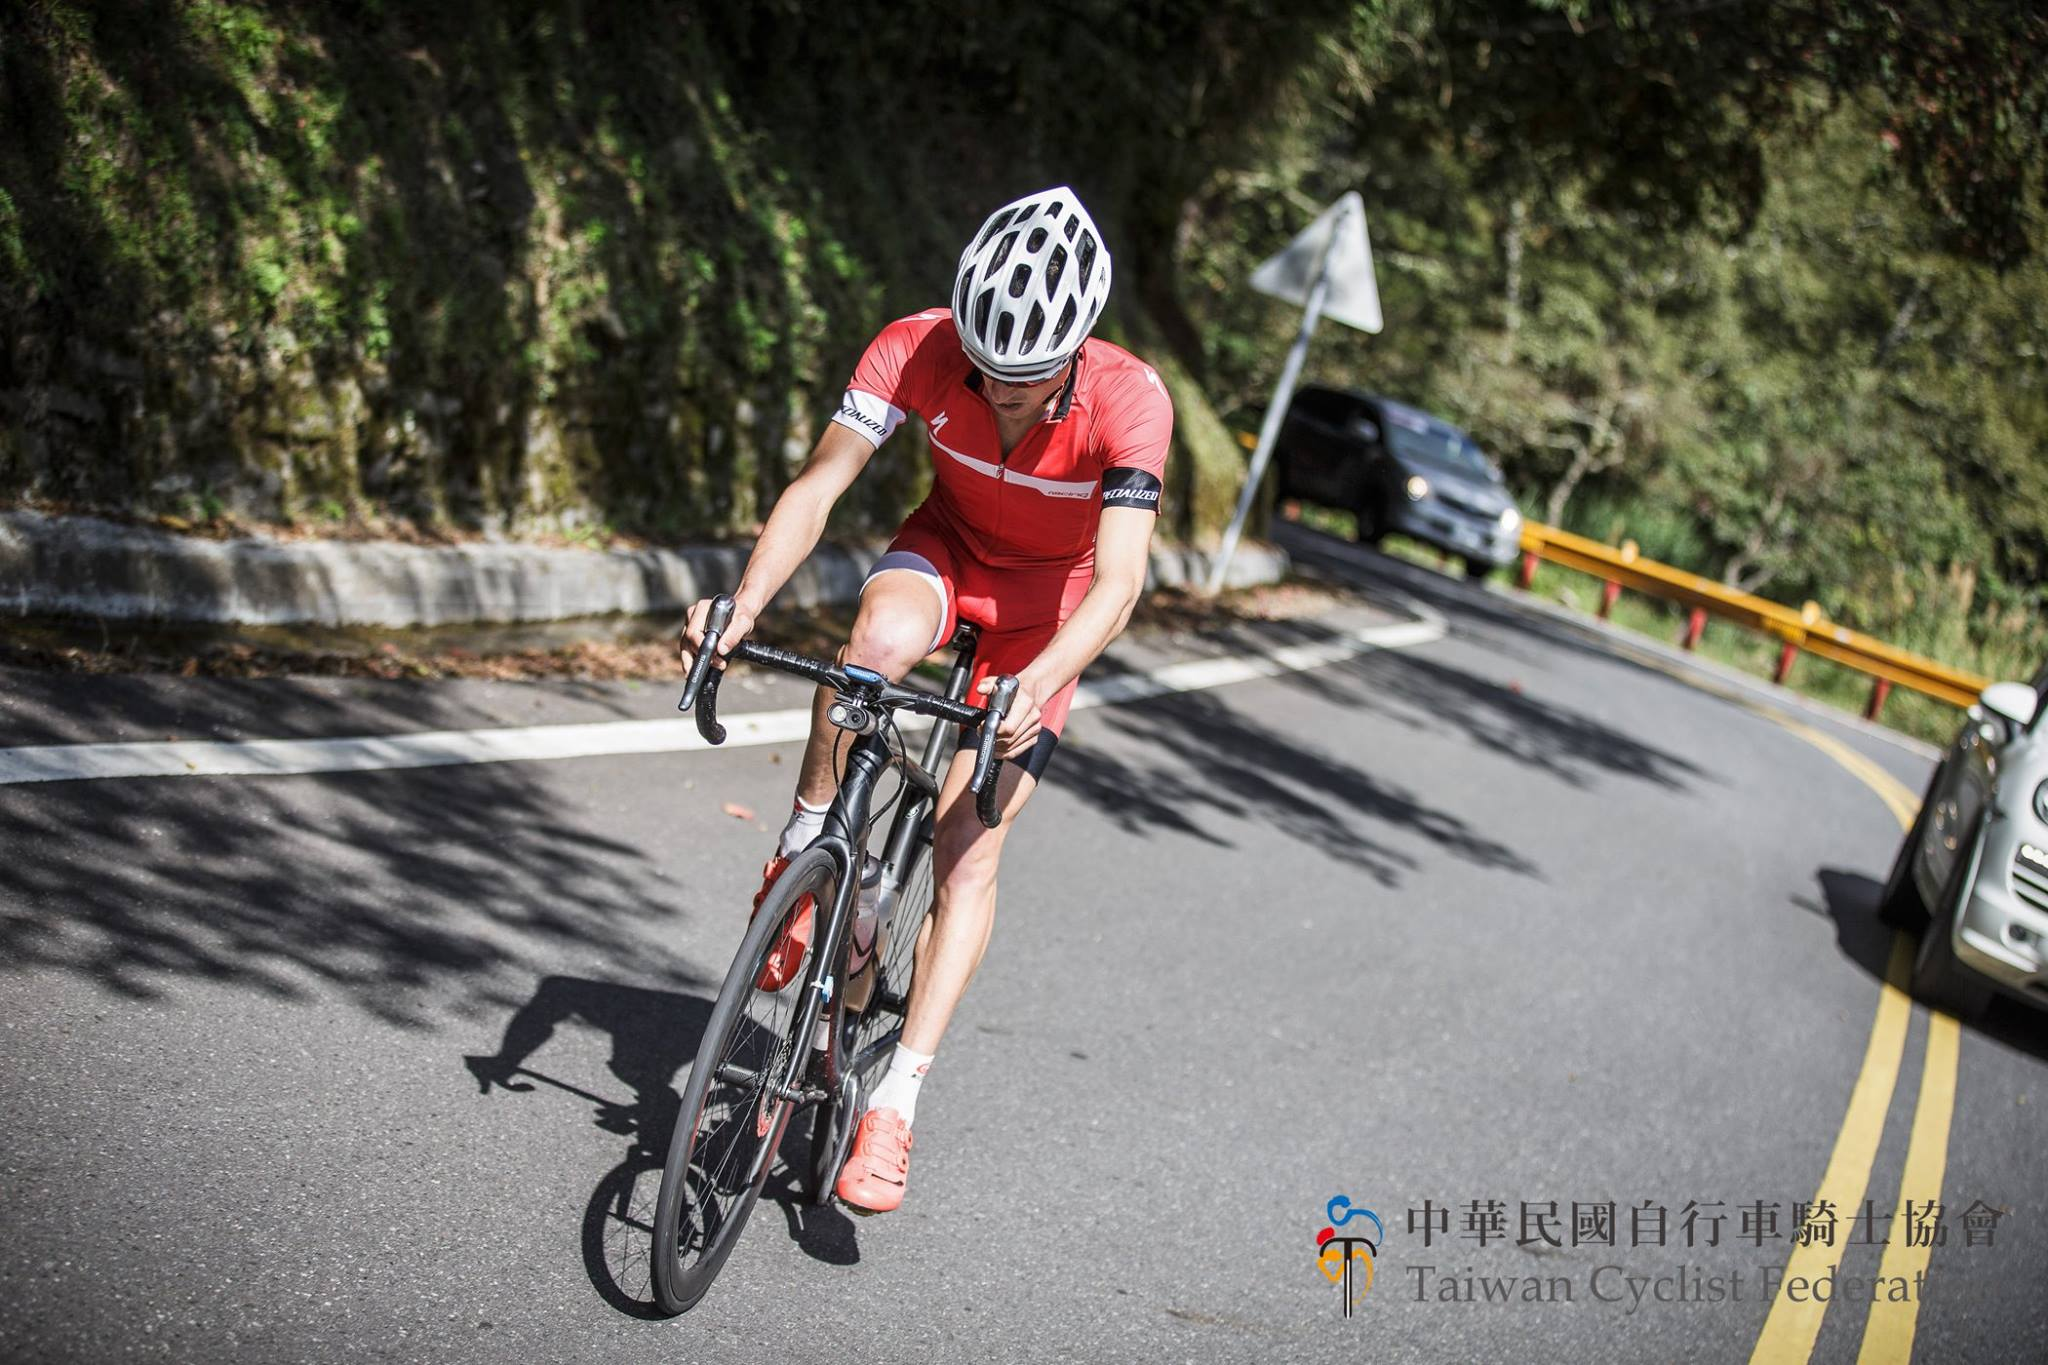 taiwankomchallenge-adriansmith-nicolasraybaud-specialized-cyclist-2015-racing